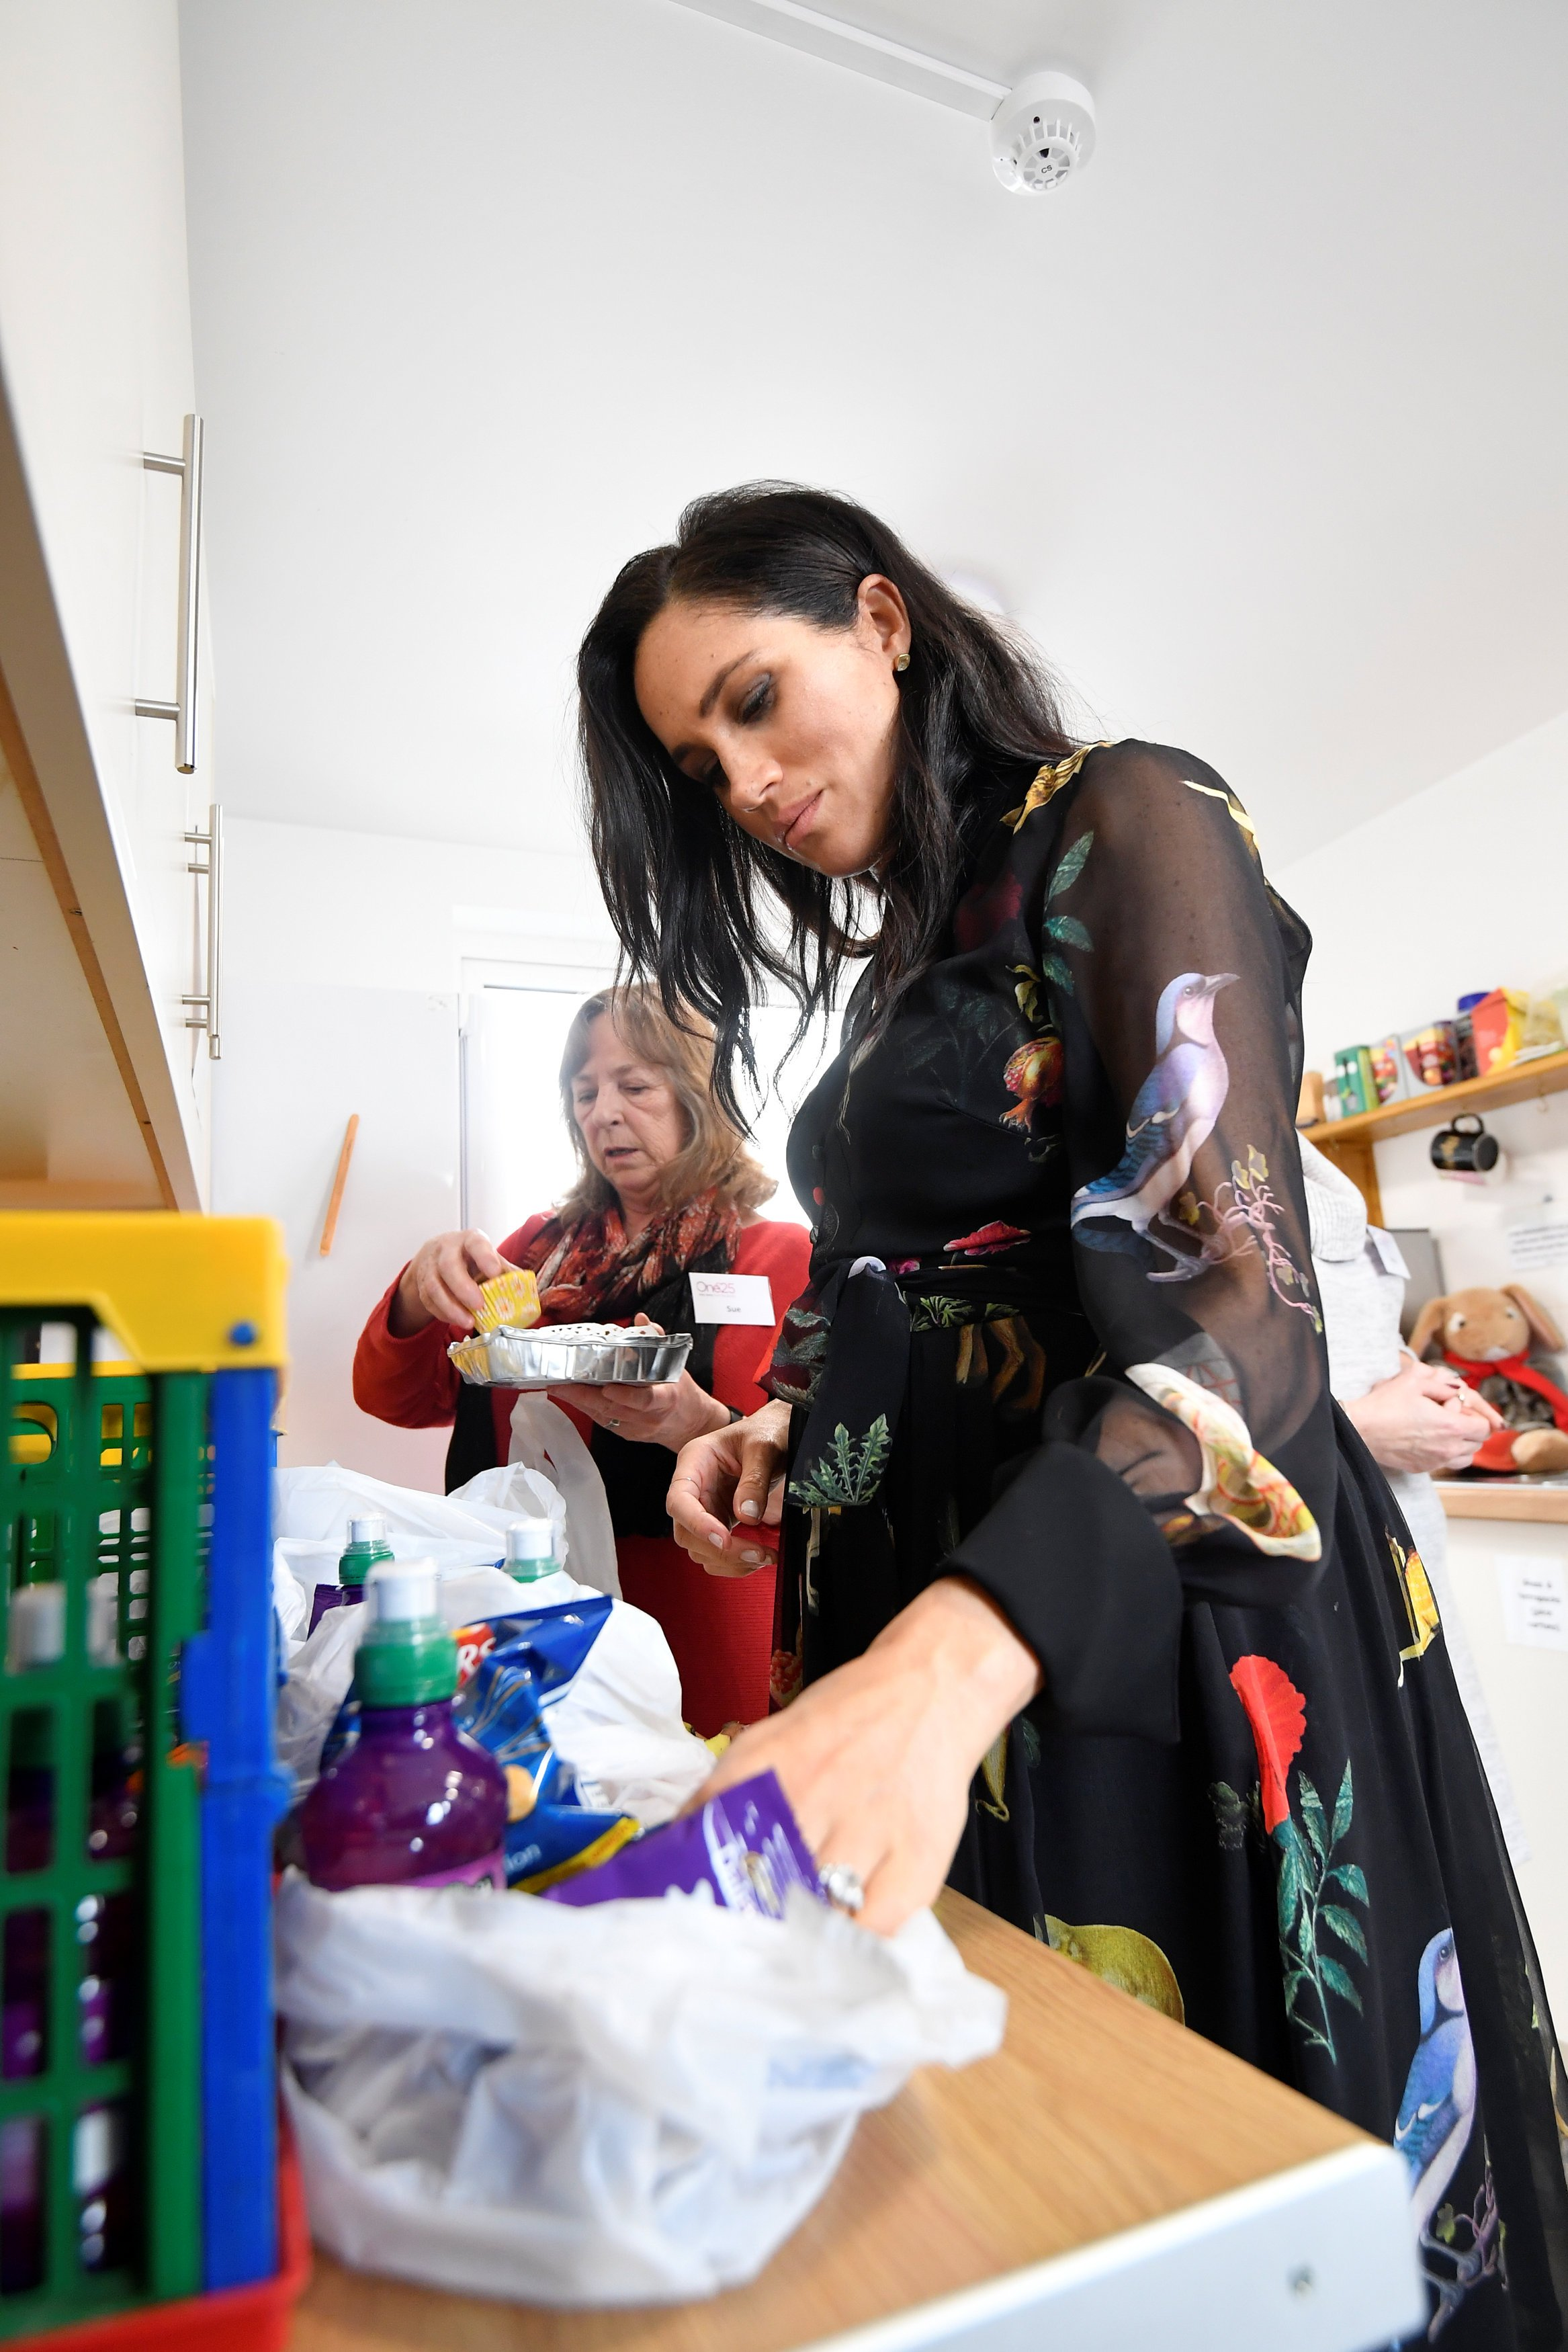 Meghan prepares food parcels to go in the charity outreach van during a visit to One25, a charity specialising in helping women to break free from street sex work, addiction and other life-controlling issues, on February 1, 2019 in Bristol, England. | Source: Getty Images